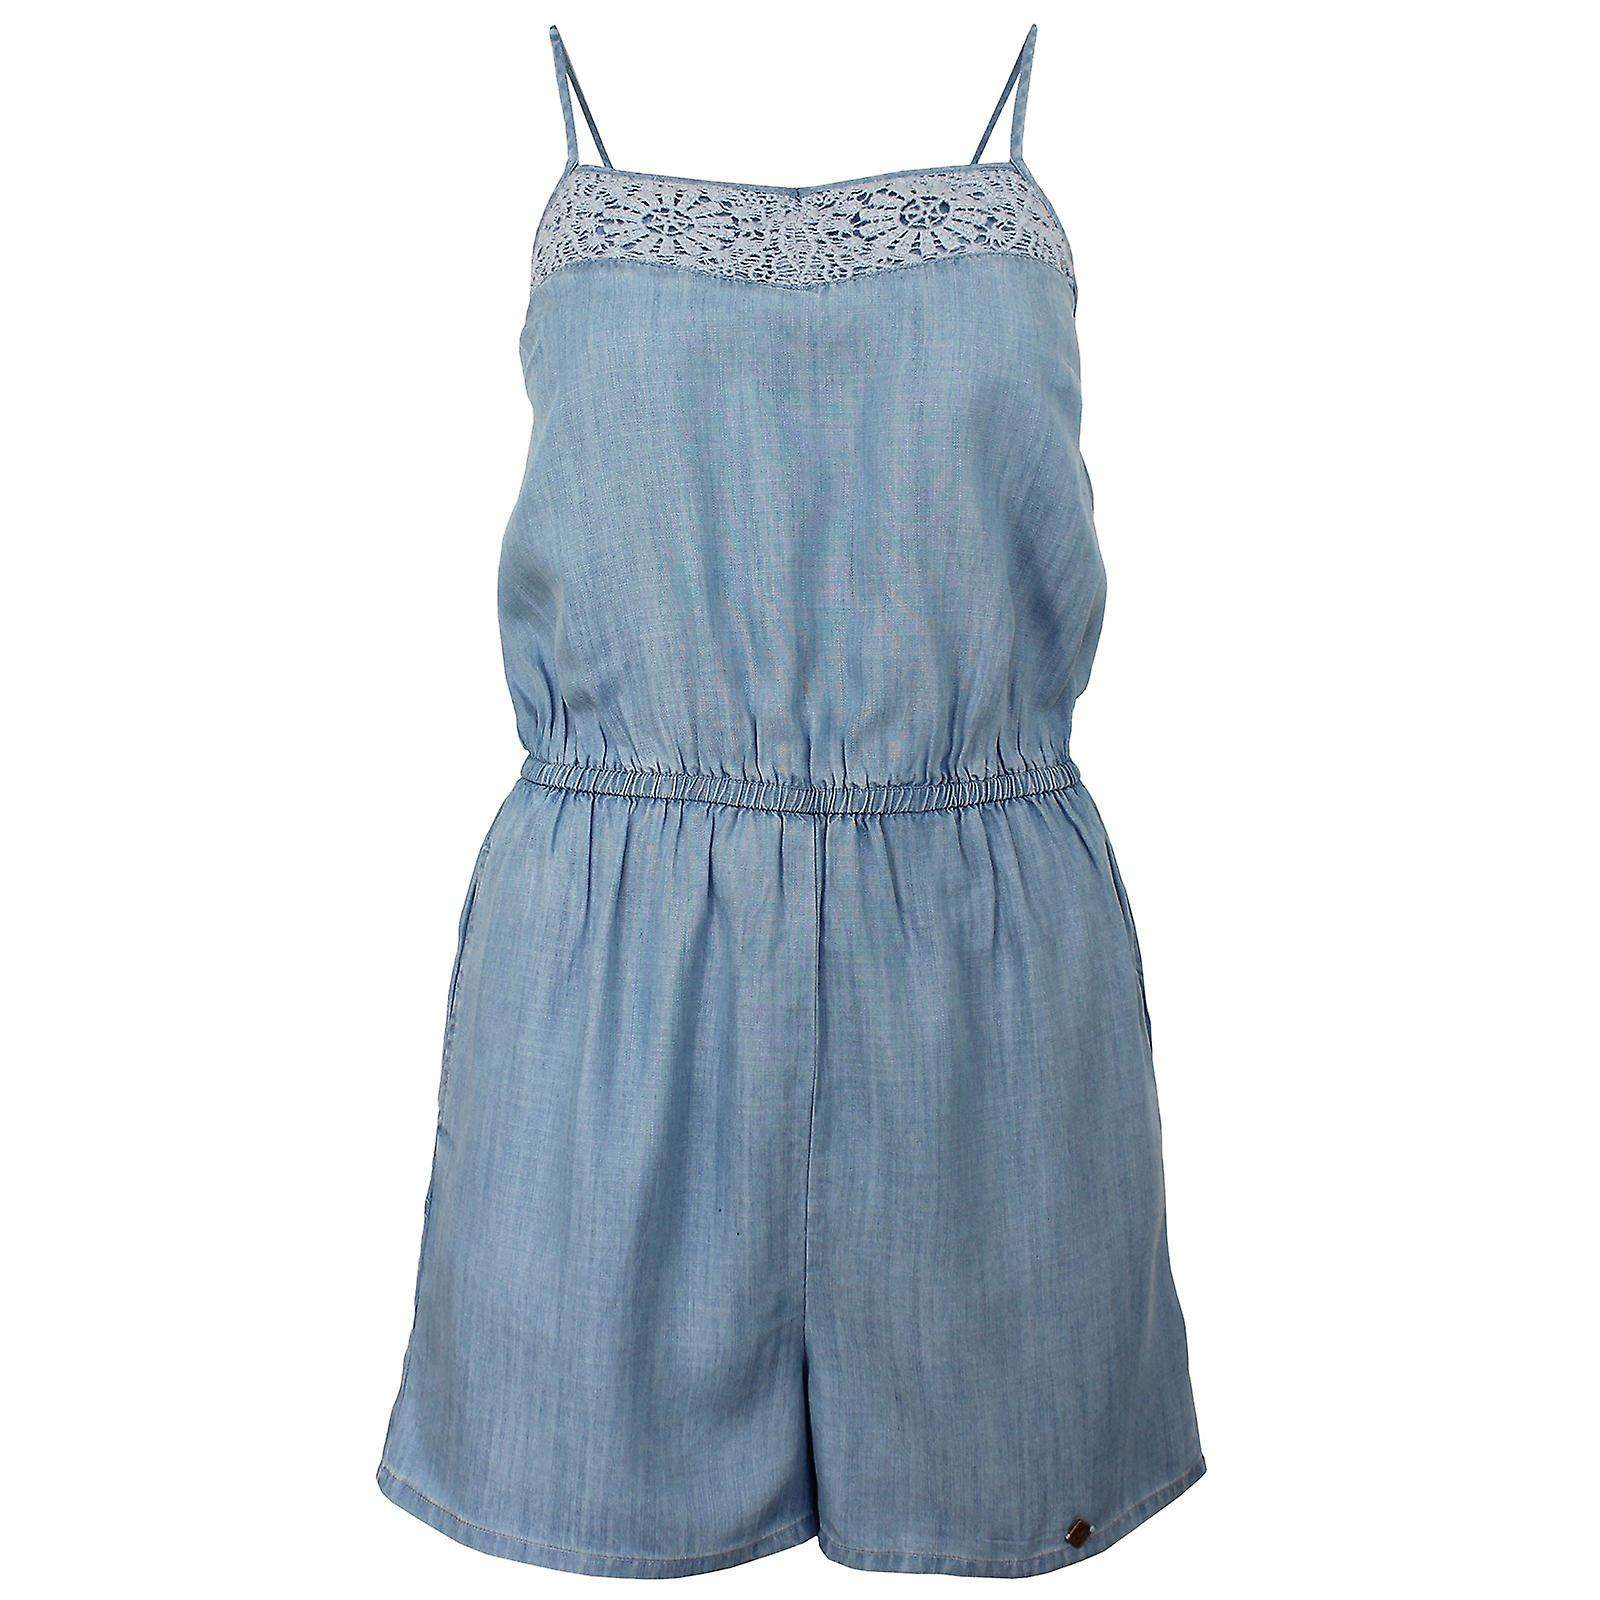 Superdry tess femmes&s vacation bleu playsuit